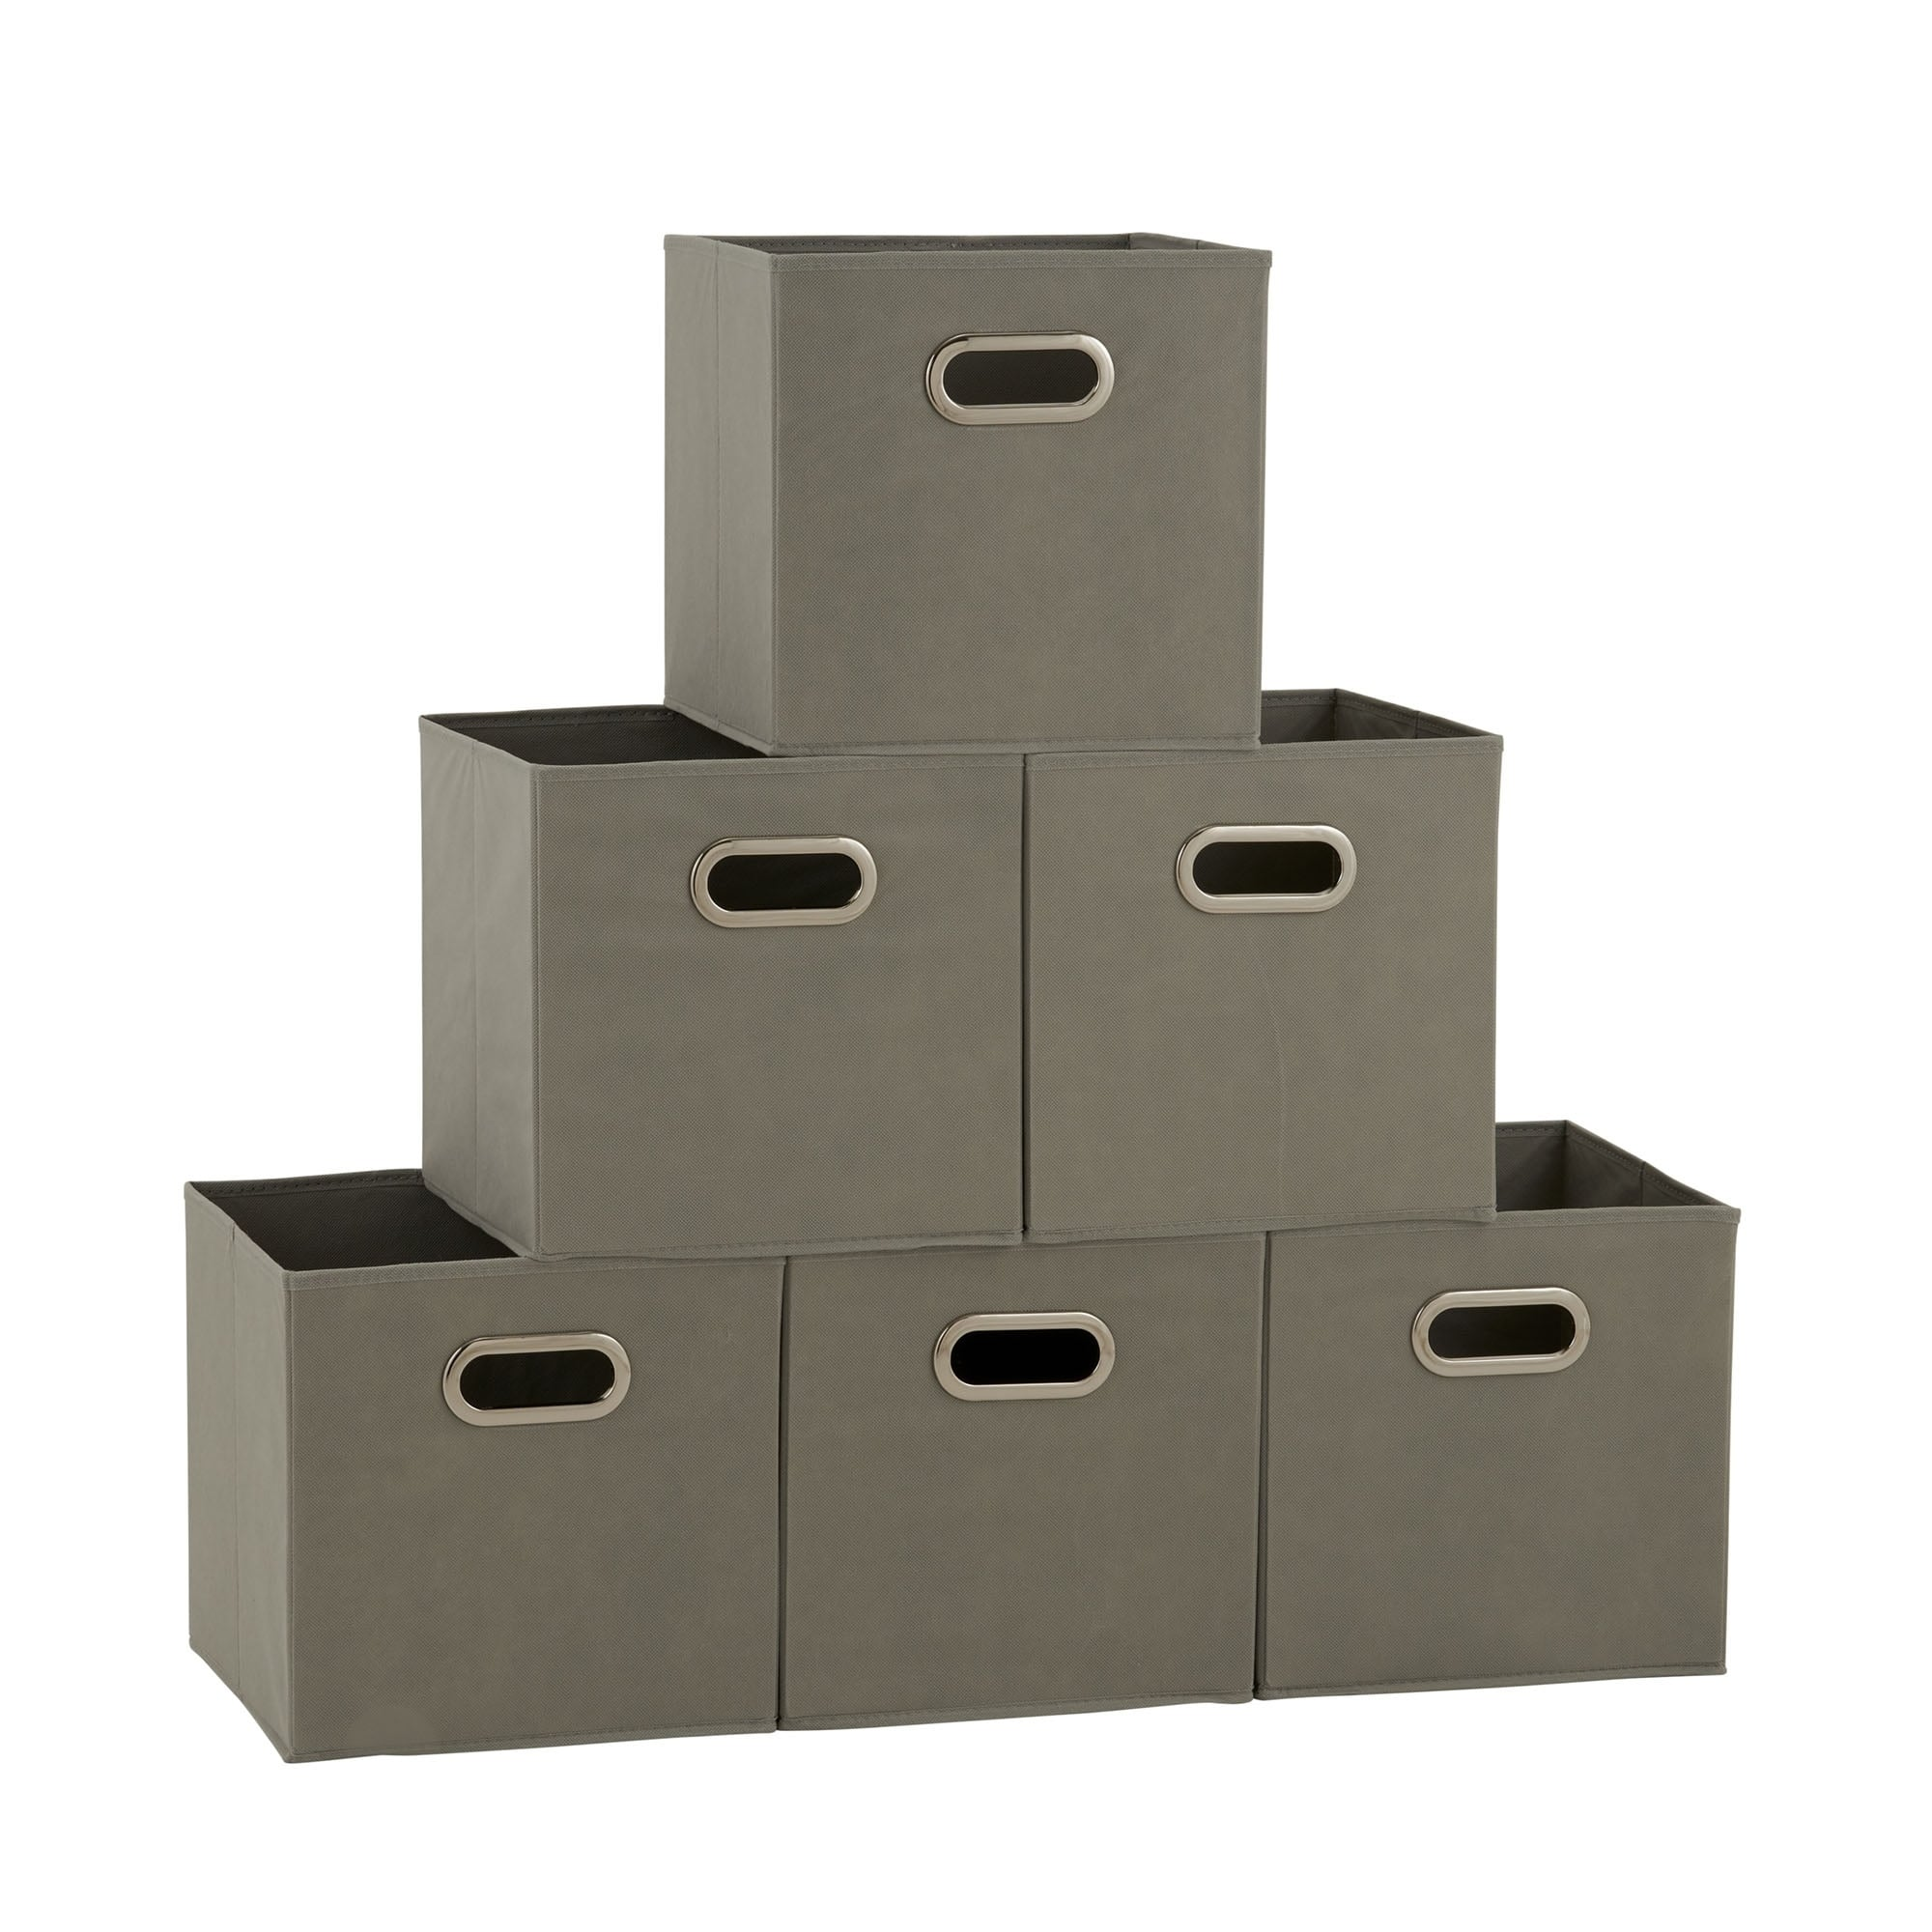 Product Image Household Essentials Open Fabric Storage Cube Bins, Set Of 6,  Teafog